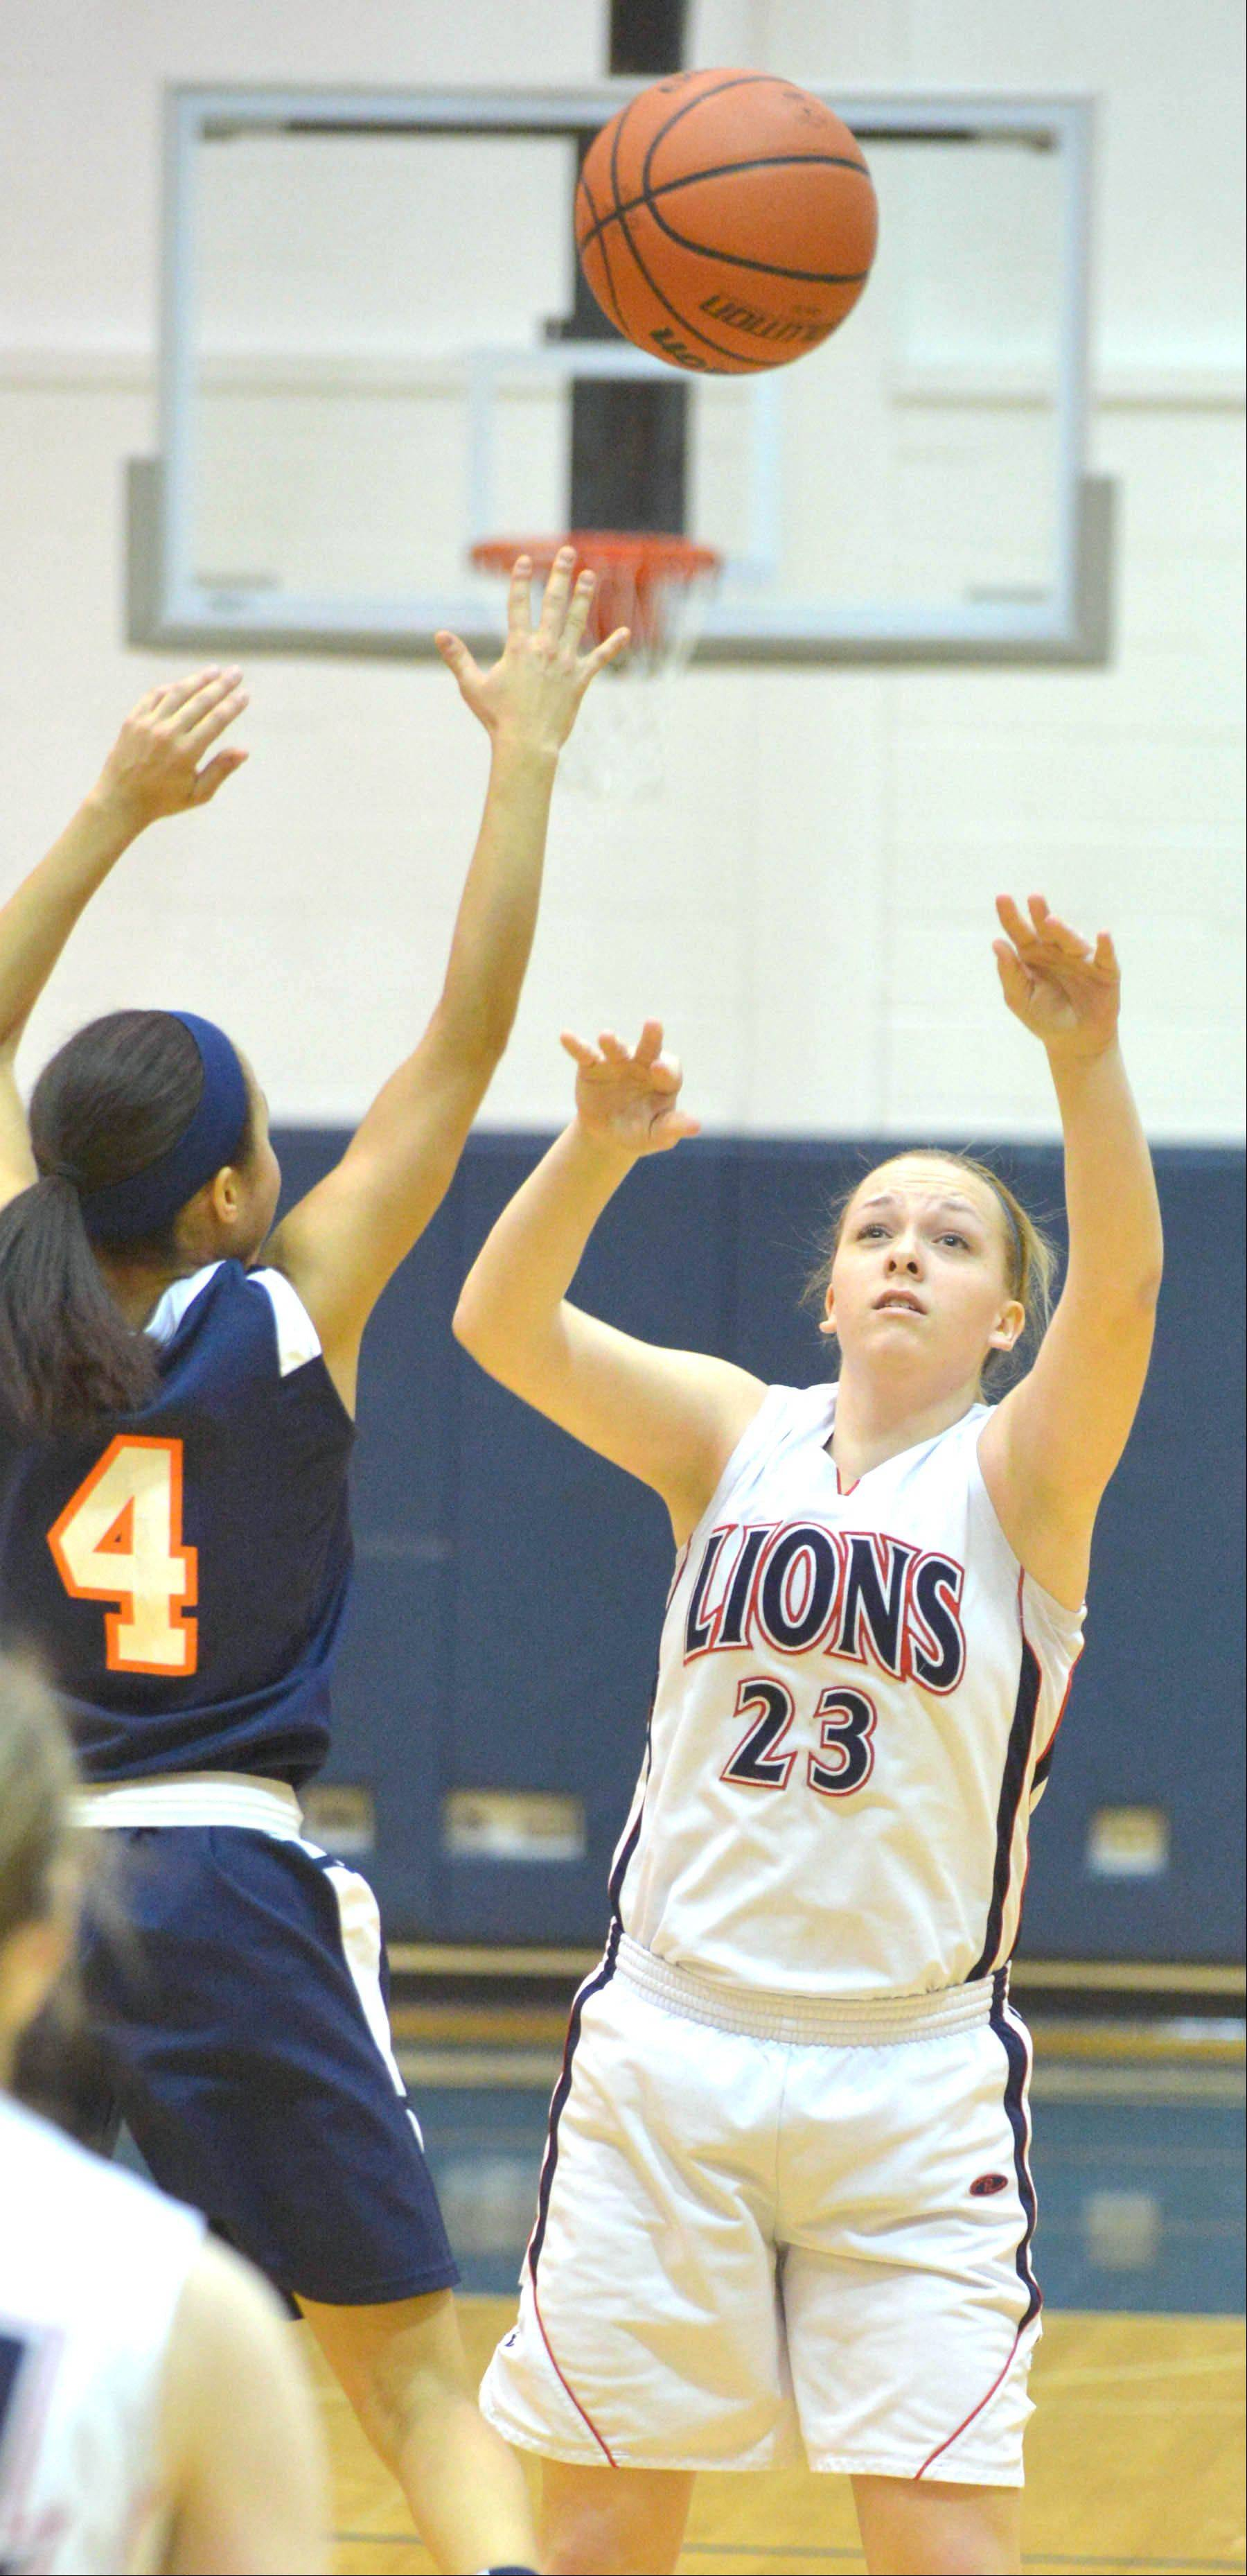 Sierra Birdsell of Lisle puts up a shot during the Latin at Lisle girls basketball game Thursday.